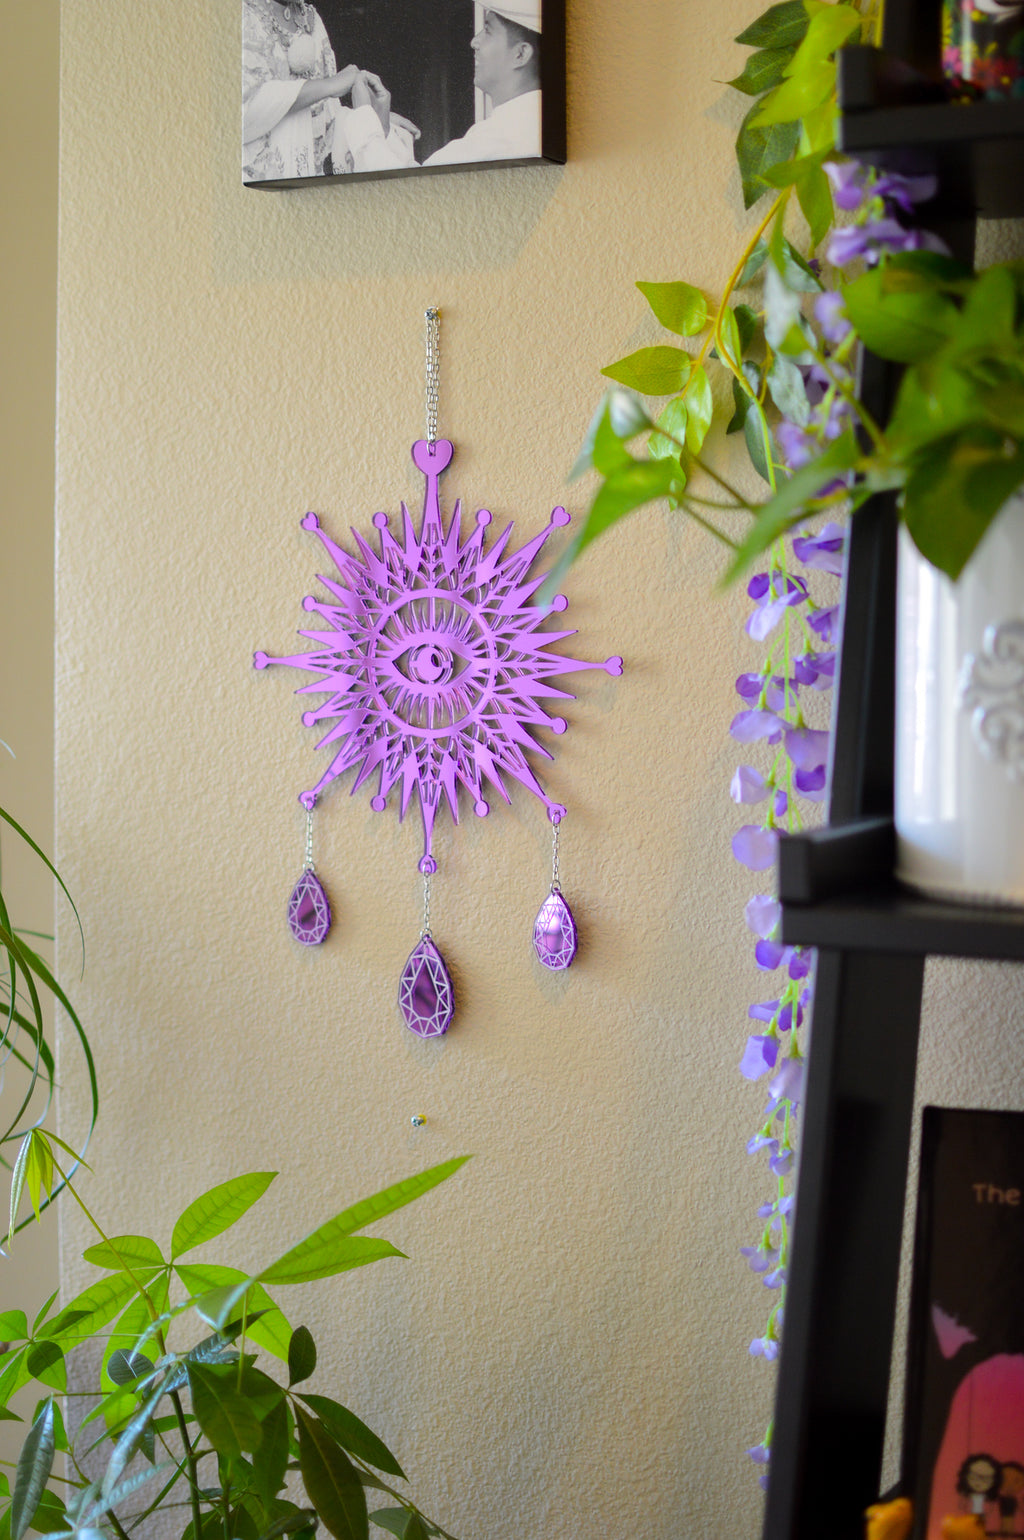 3rd Eye Dimond Wall Hanger - Purple Mirror